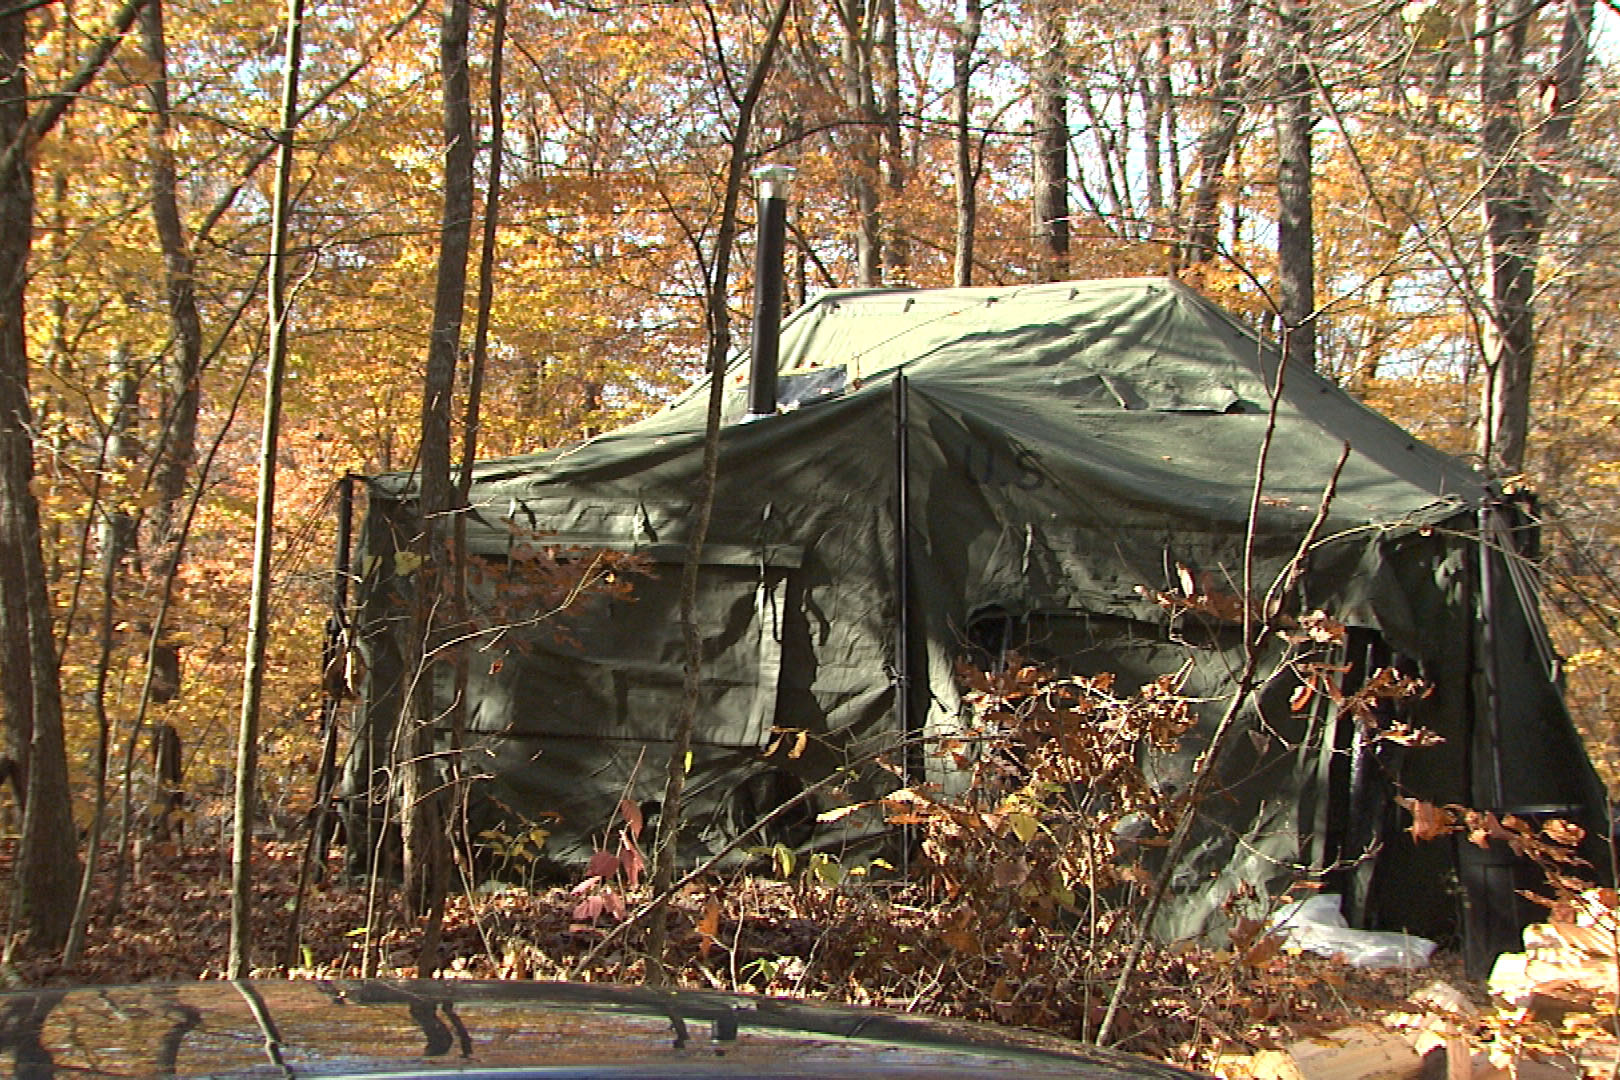 The tents are setup on private property not far from the planned logging area.